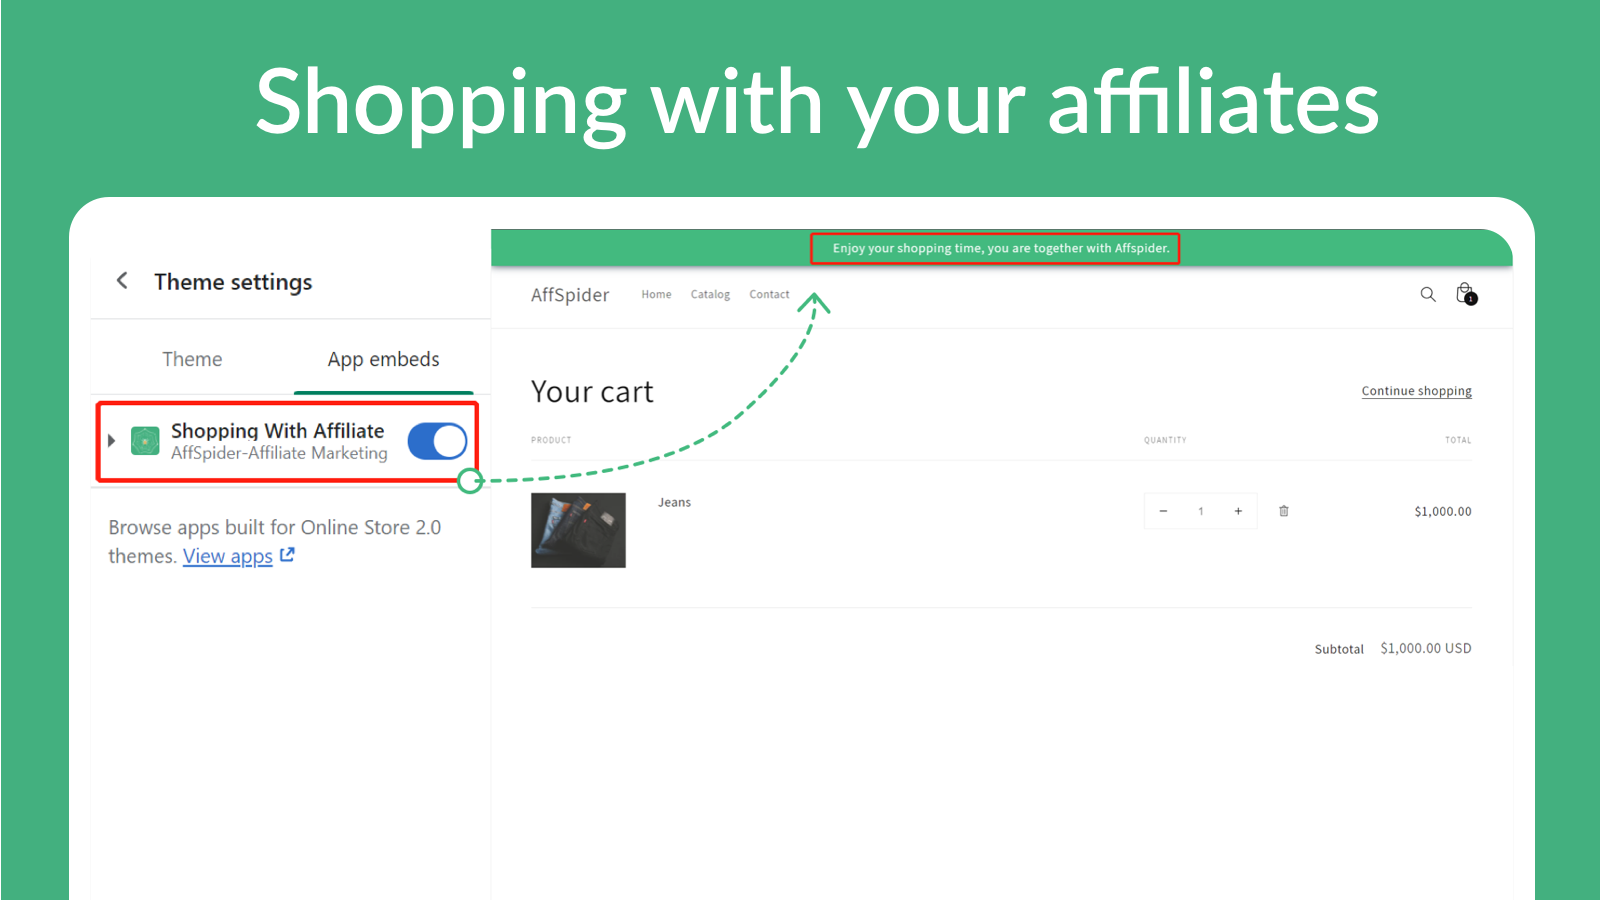 Shopping with your affiliates